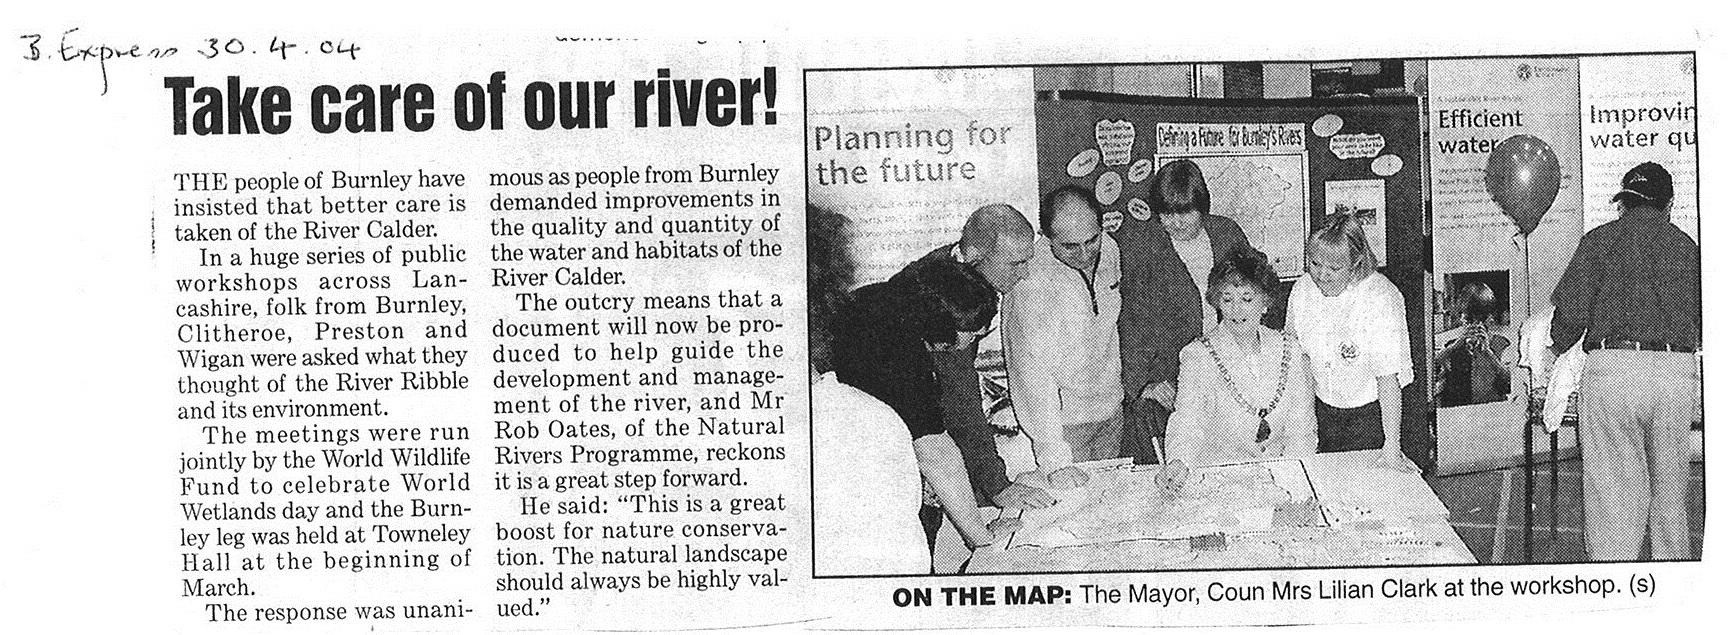 2004 April 30 Take care of our river!.jpg